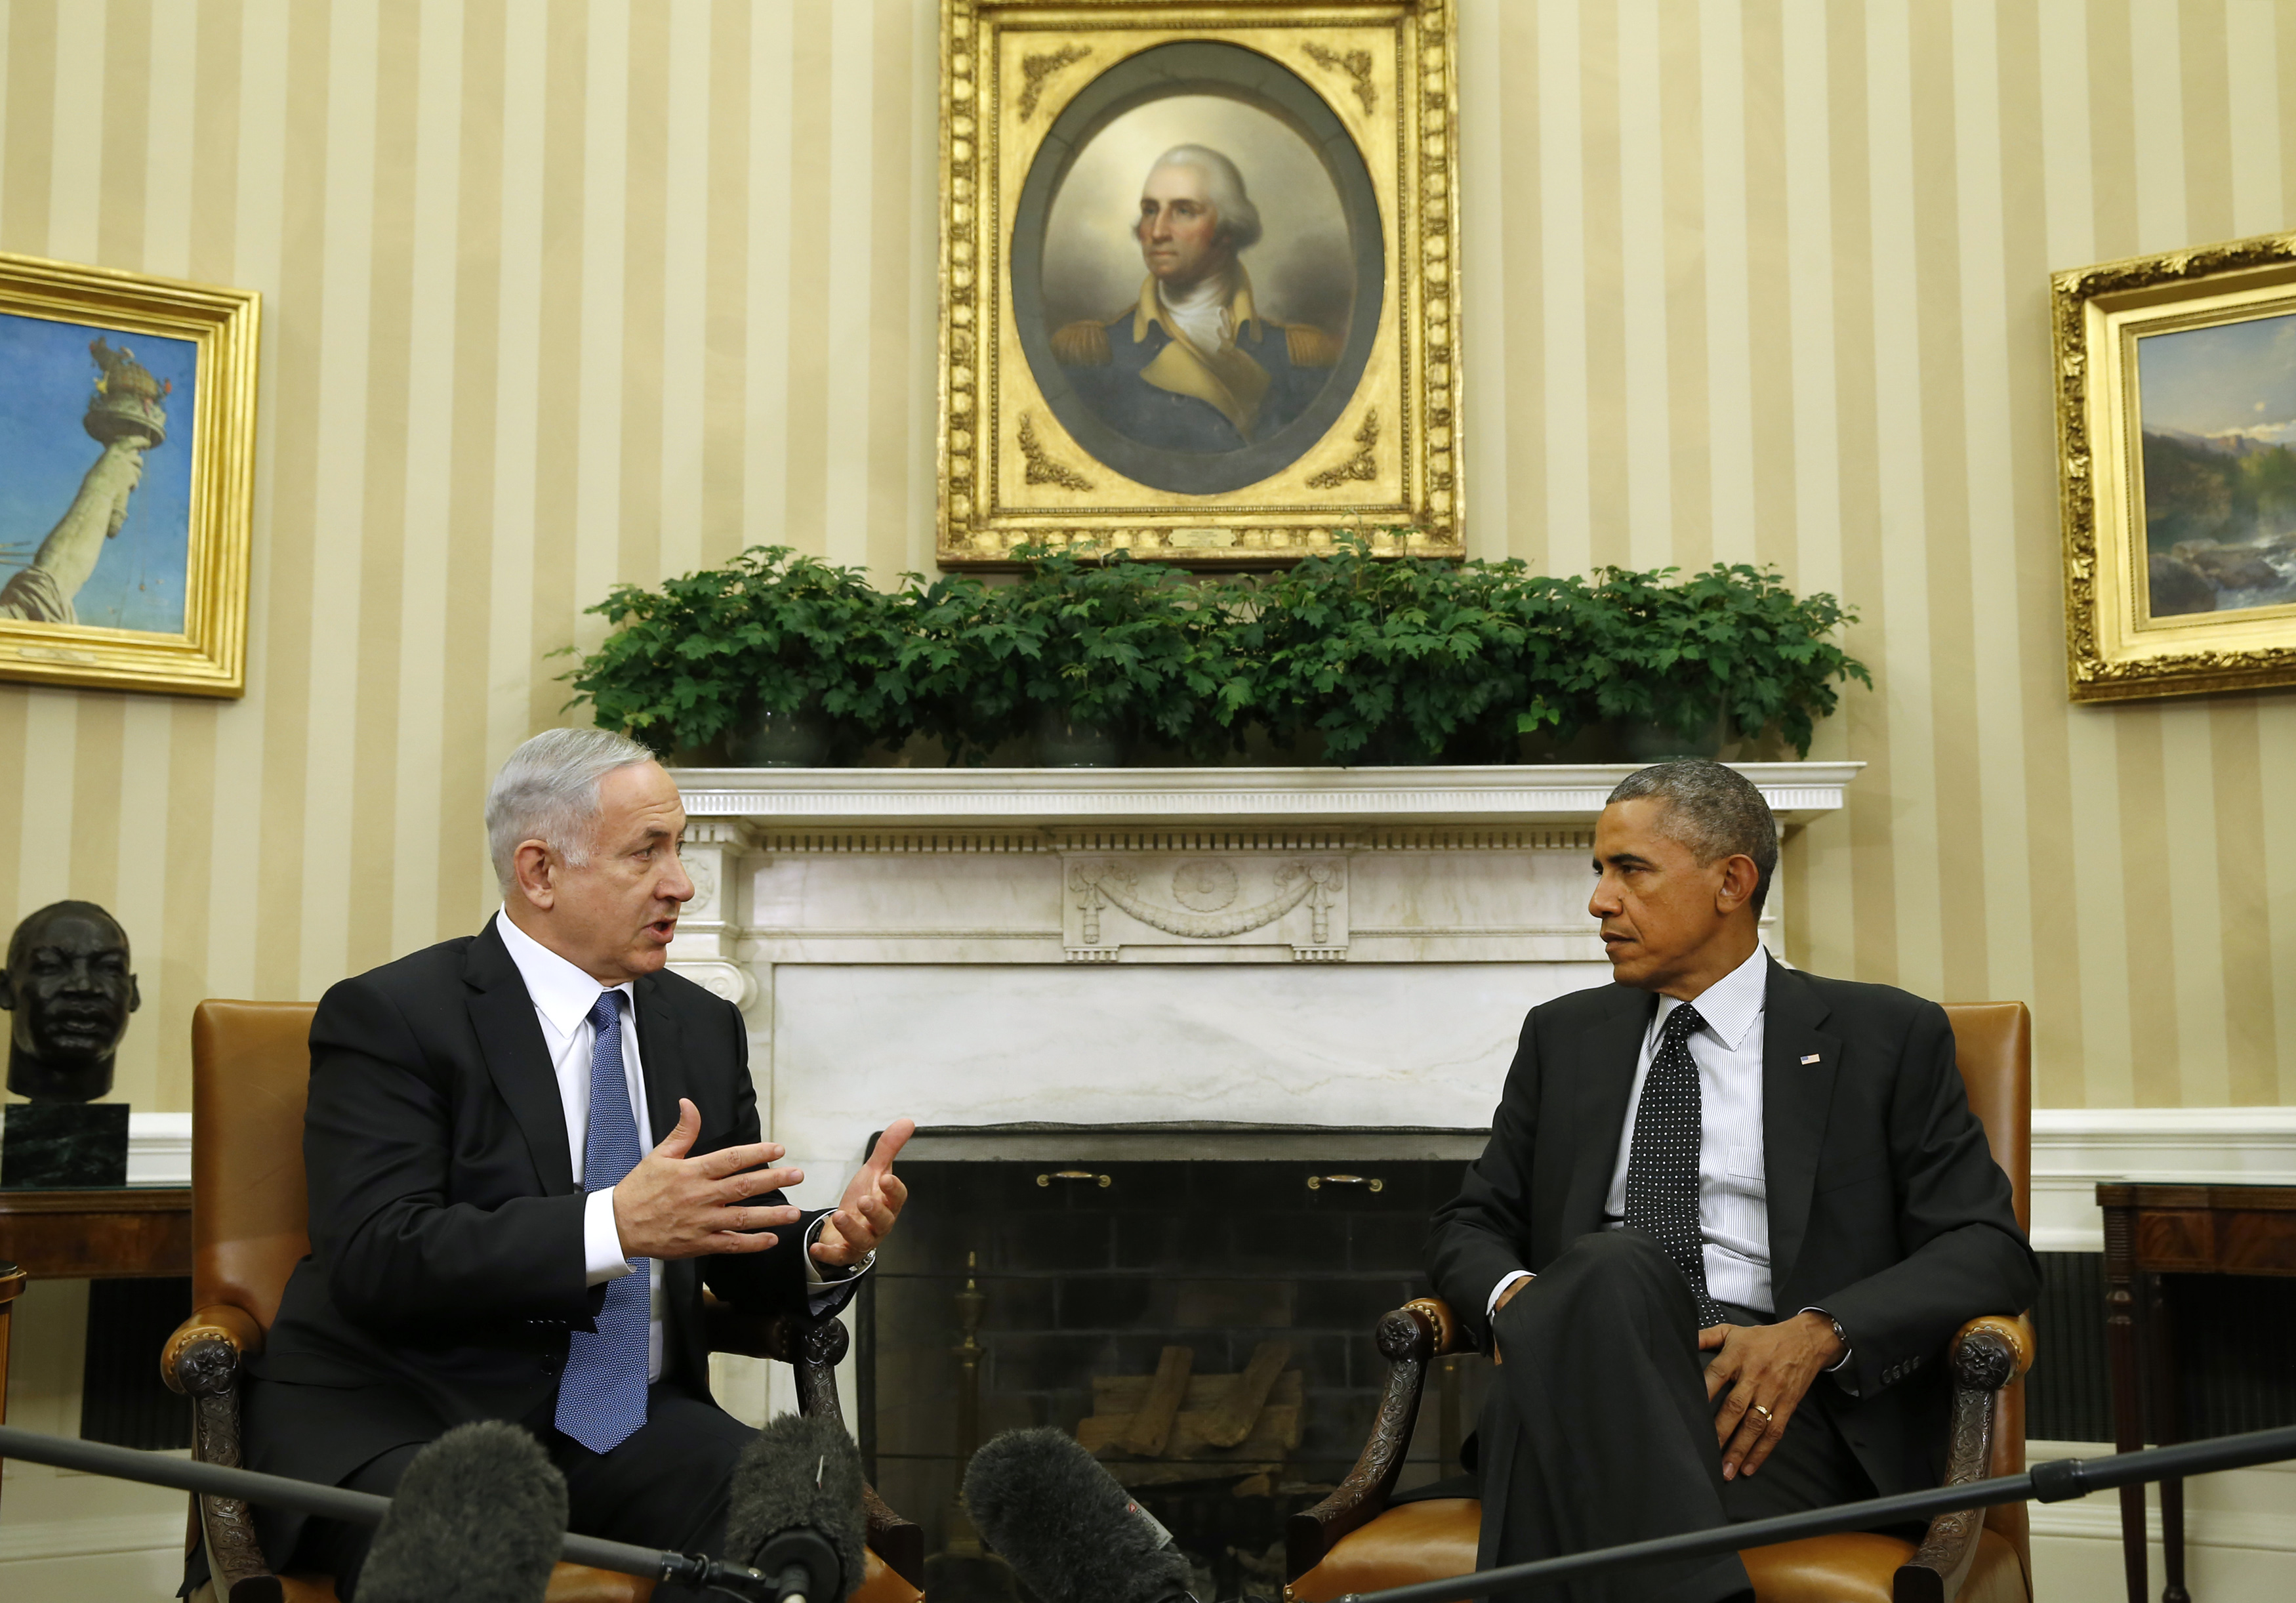 President Barack Obama meets with Israel's Prime Minister Benjamin Netanyahu at the White House in Washington on Oct. 1,  2014.